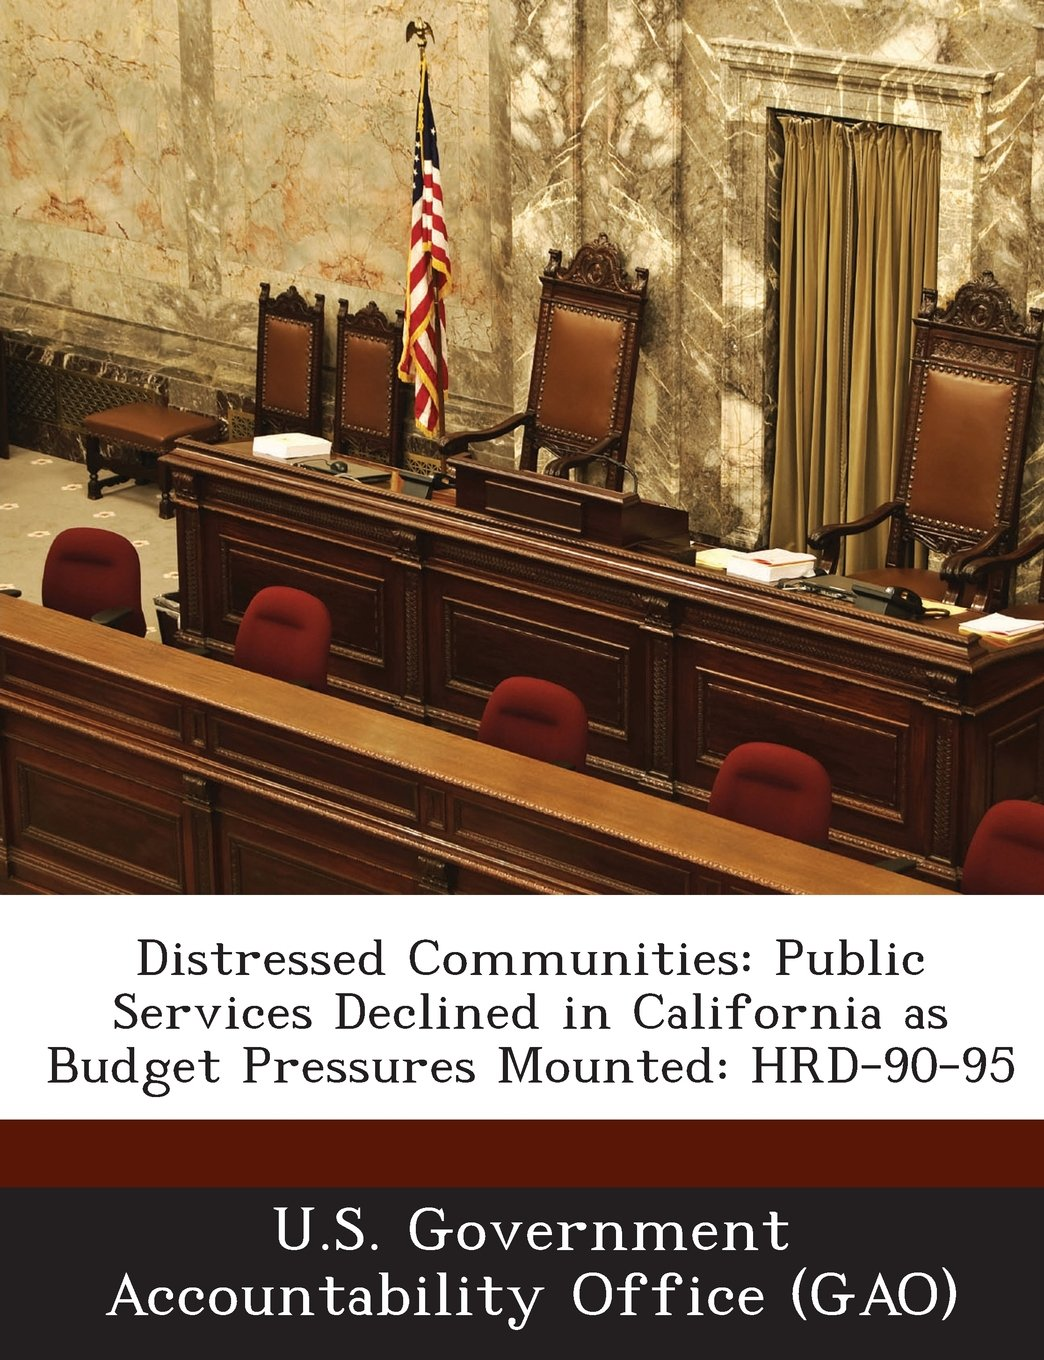 Read Online Distressed Communities: Public Services Declined in California as Budget Pressures Mounted: Hrd-90-95 ebook